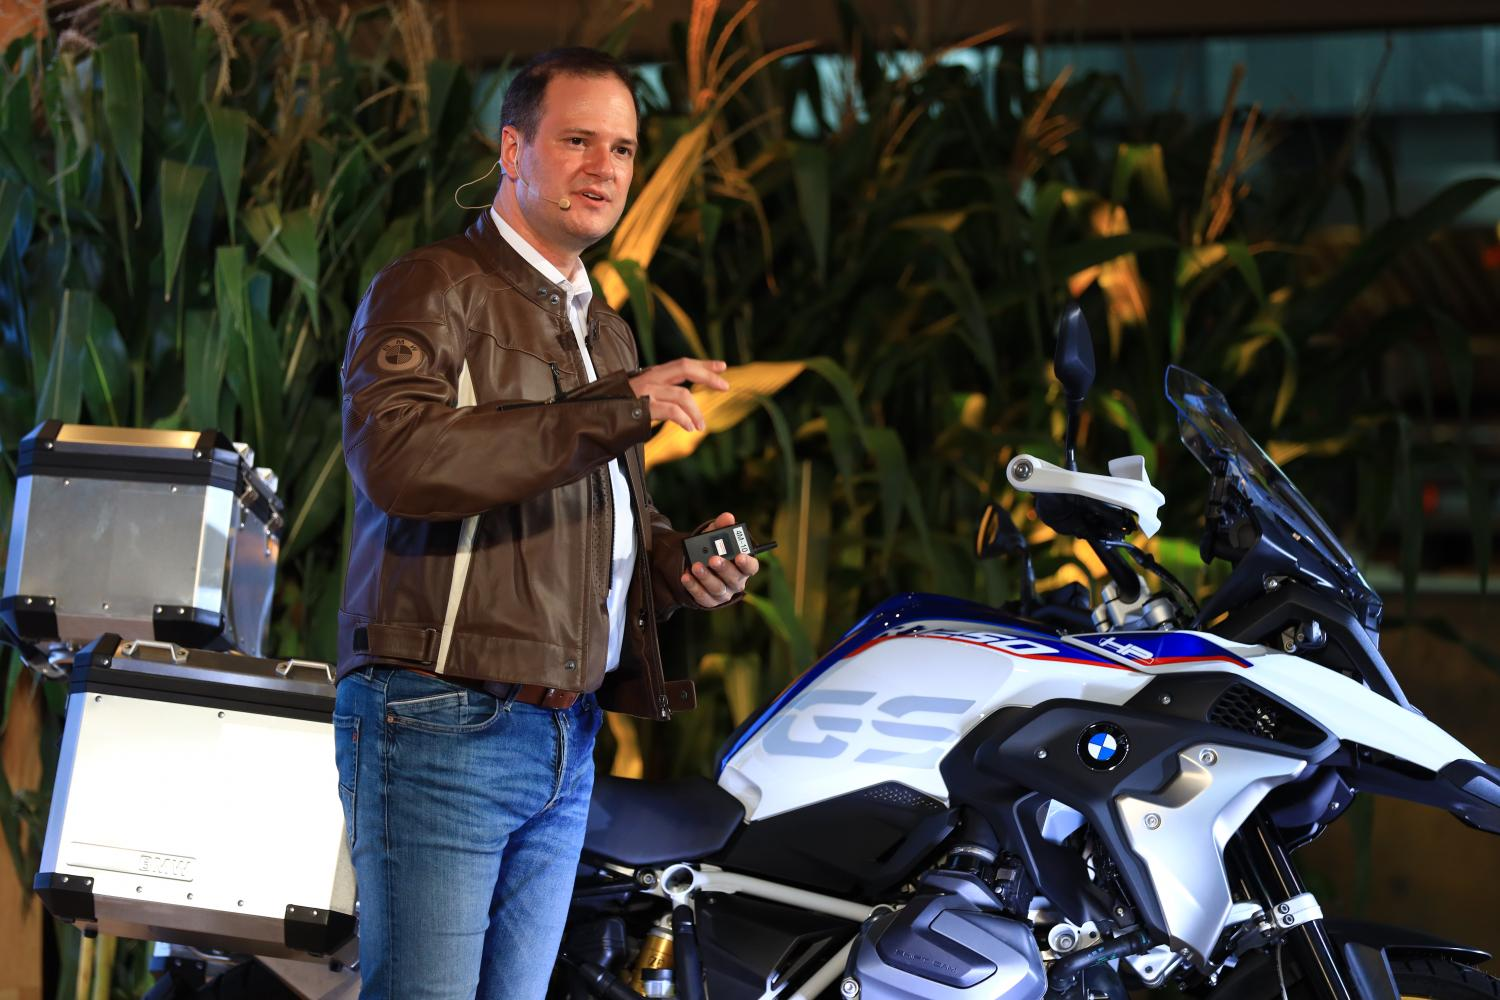 BMW Motorrad's Christian Samlowski says the remainder of 2019 offers potential for buyers before prices rise next year.